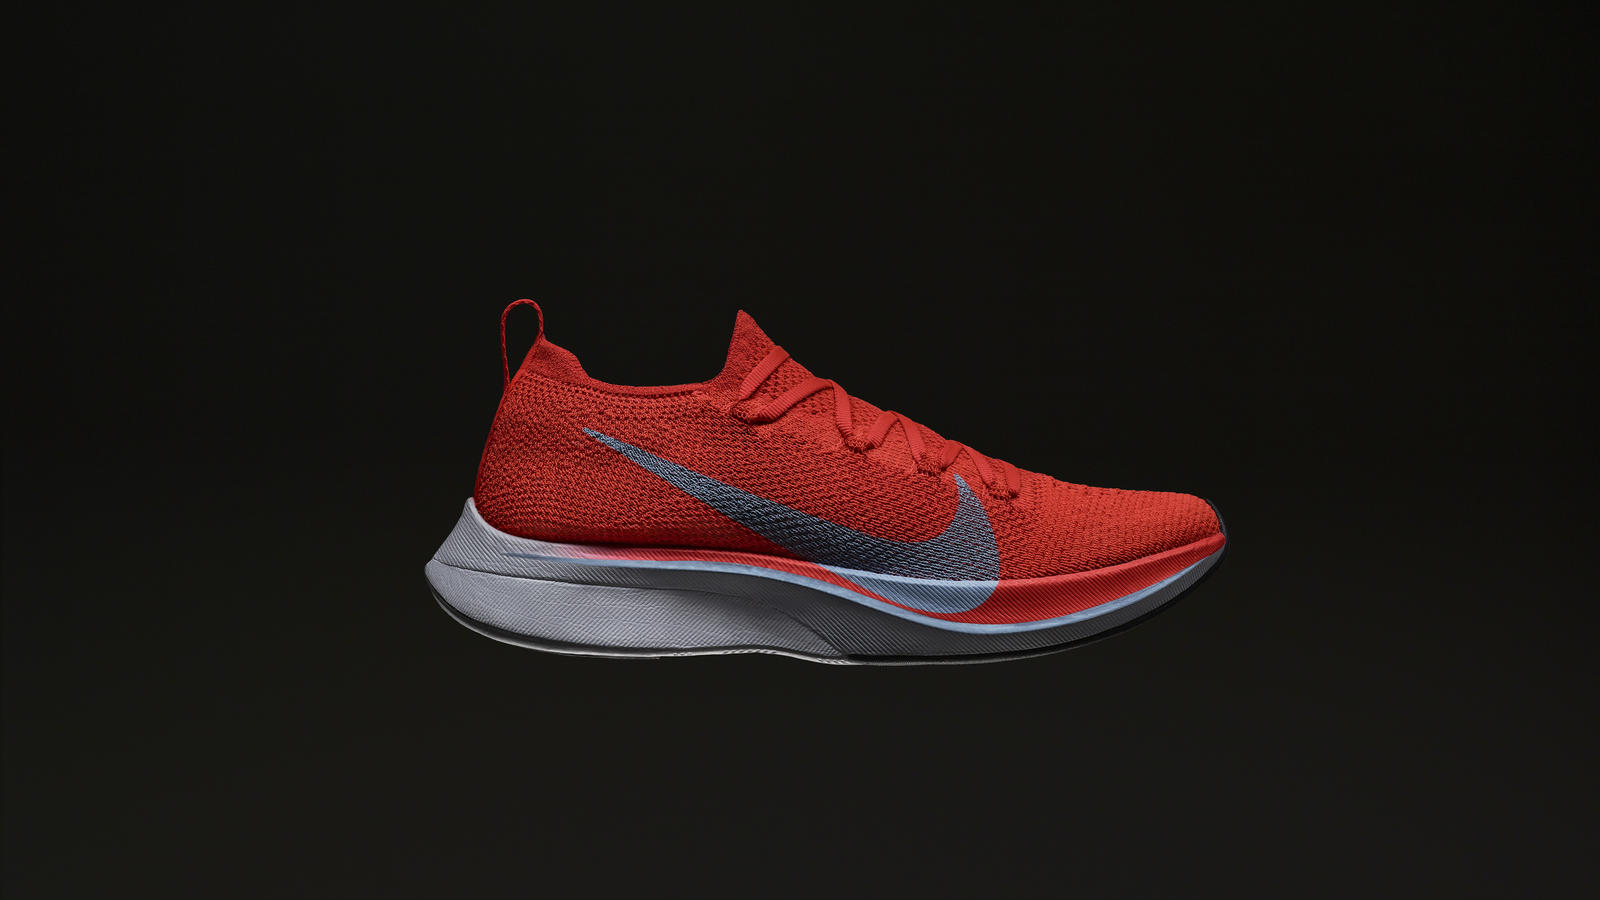 458b66db3de5e How to Get the Nike Zoom Vaporfly 4% - Nike News